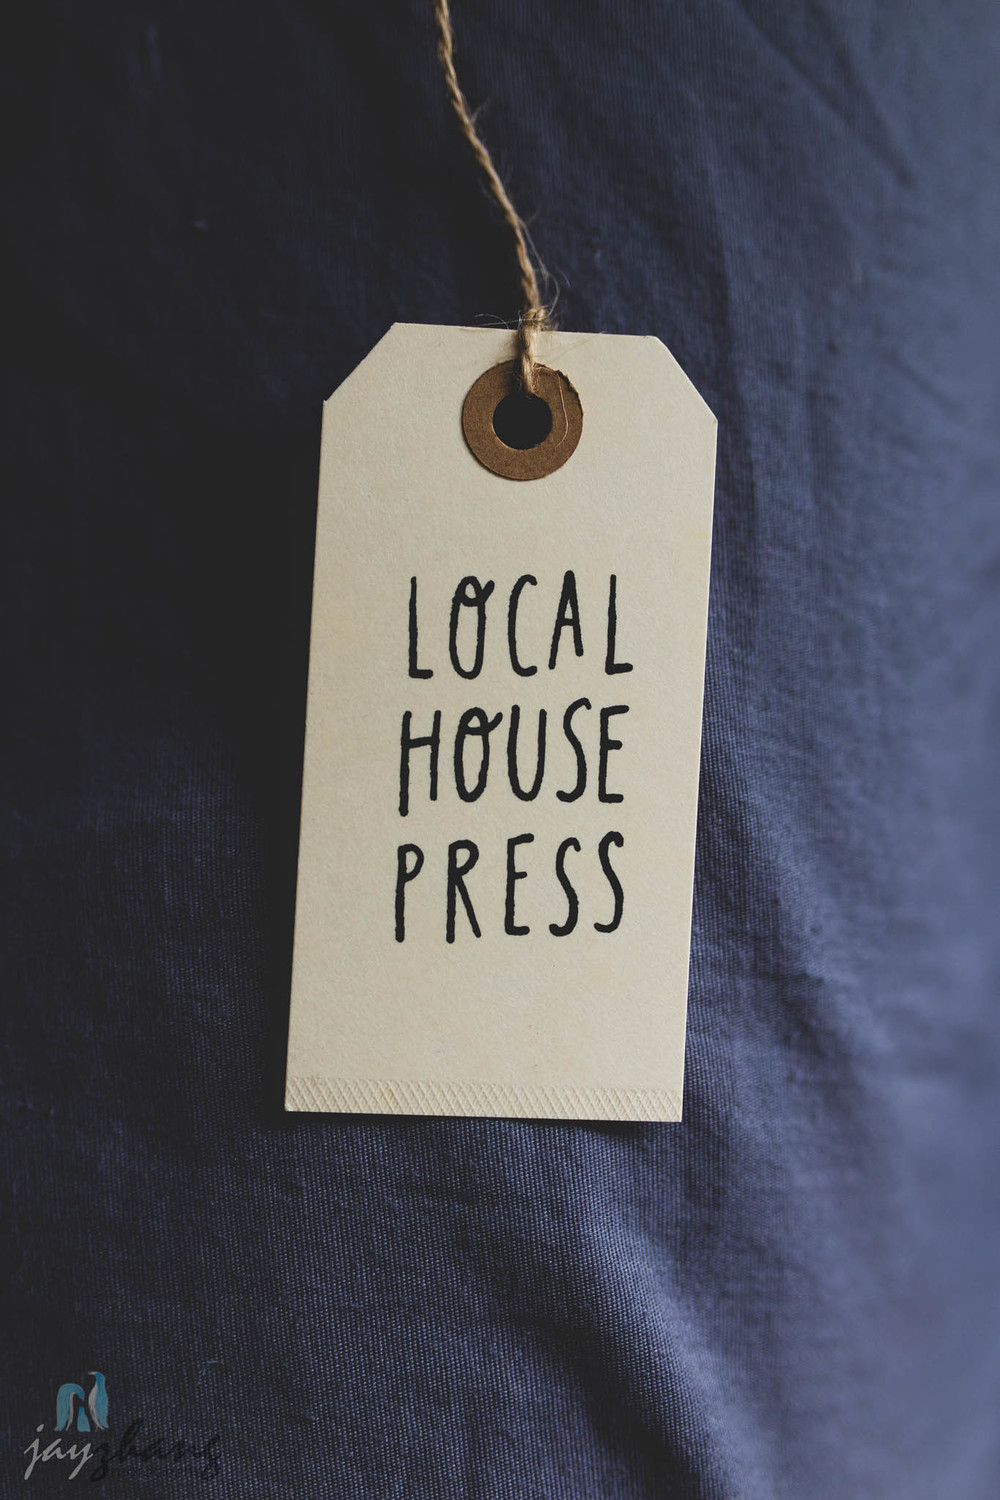 Day 314 - Local House Press